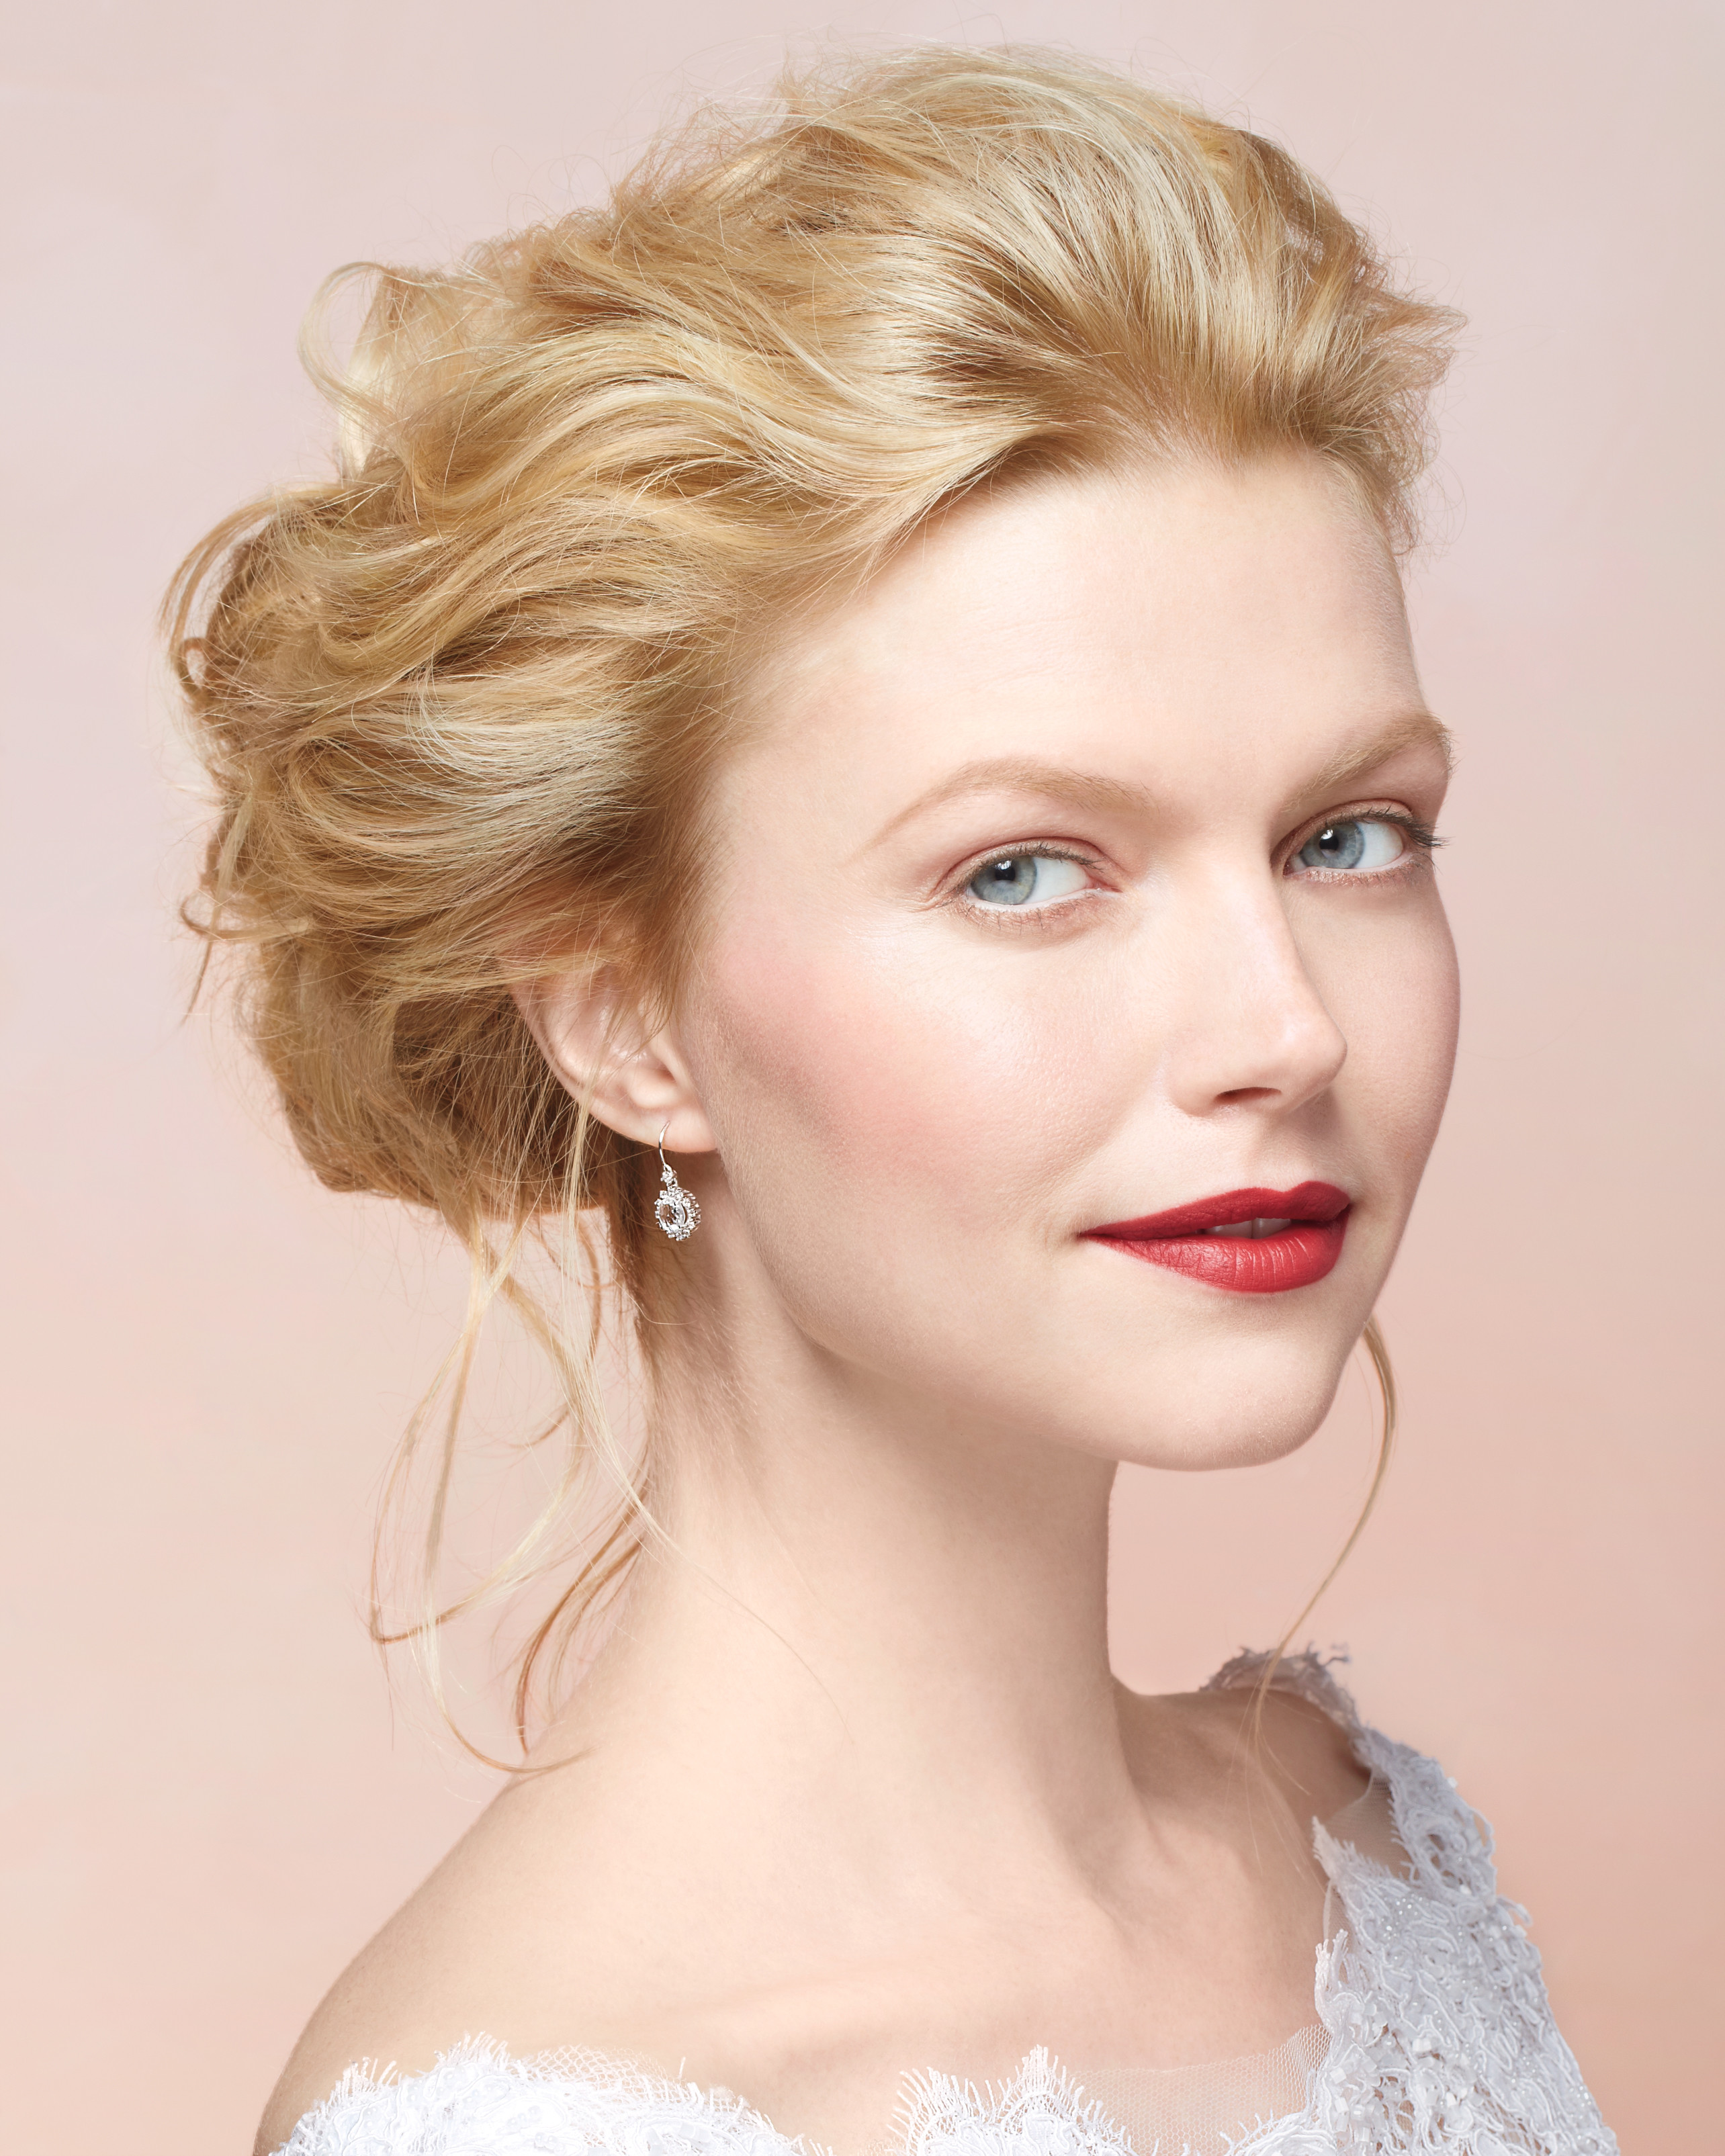 Hairstyle Ideas For Wedding: Martha Stewart Weddings